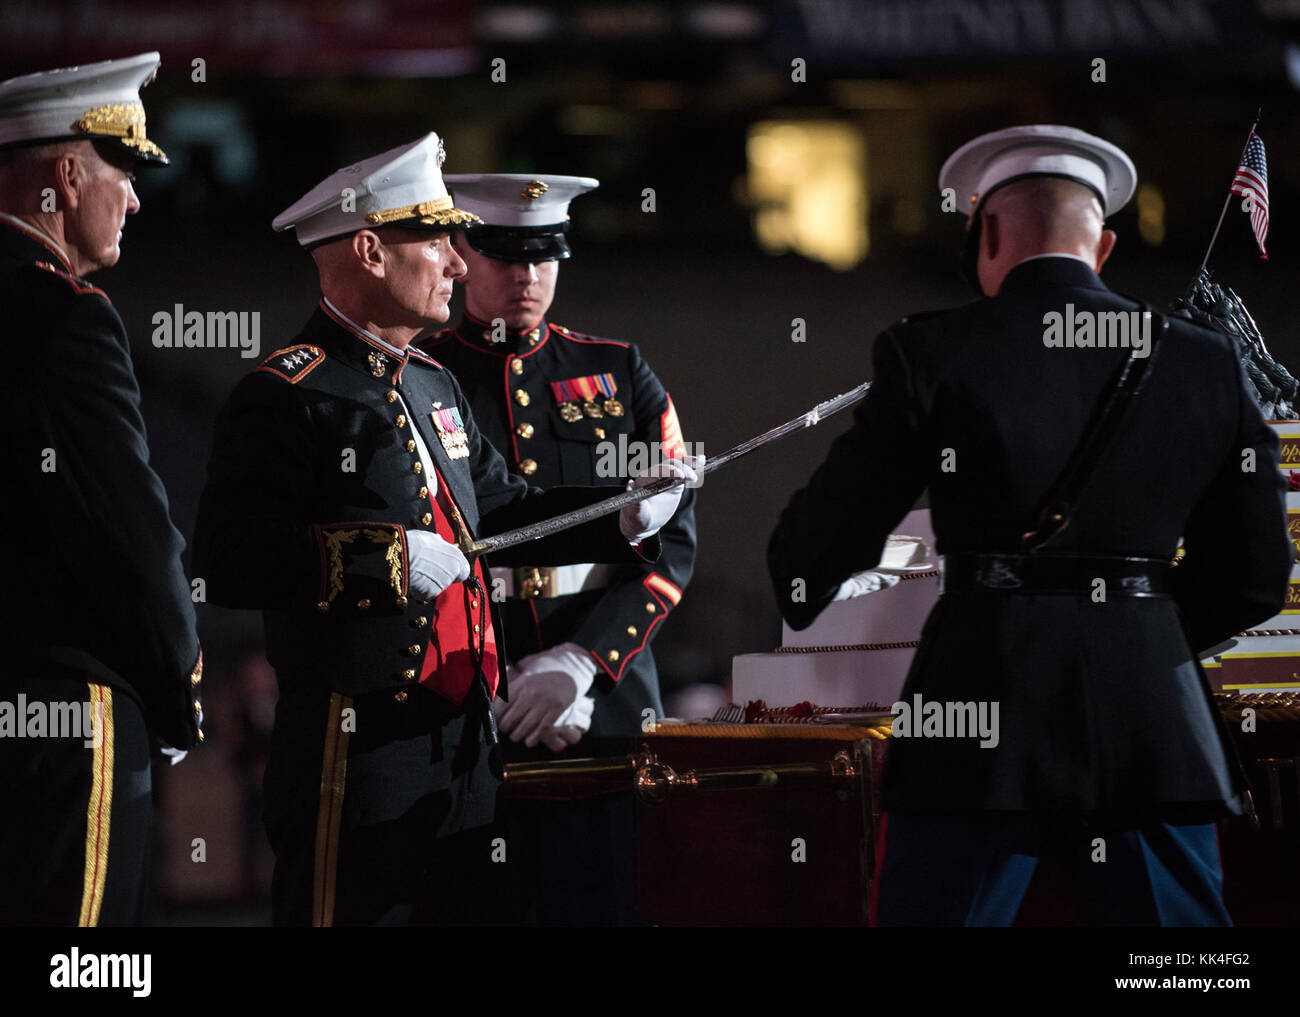 U.S. Marine Corps Lt. Gen. Rex G. McMillian, 10th Commander of Marine Forces Reserve and Marine Forces North, cuts - Stock Image